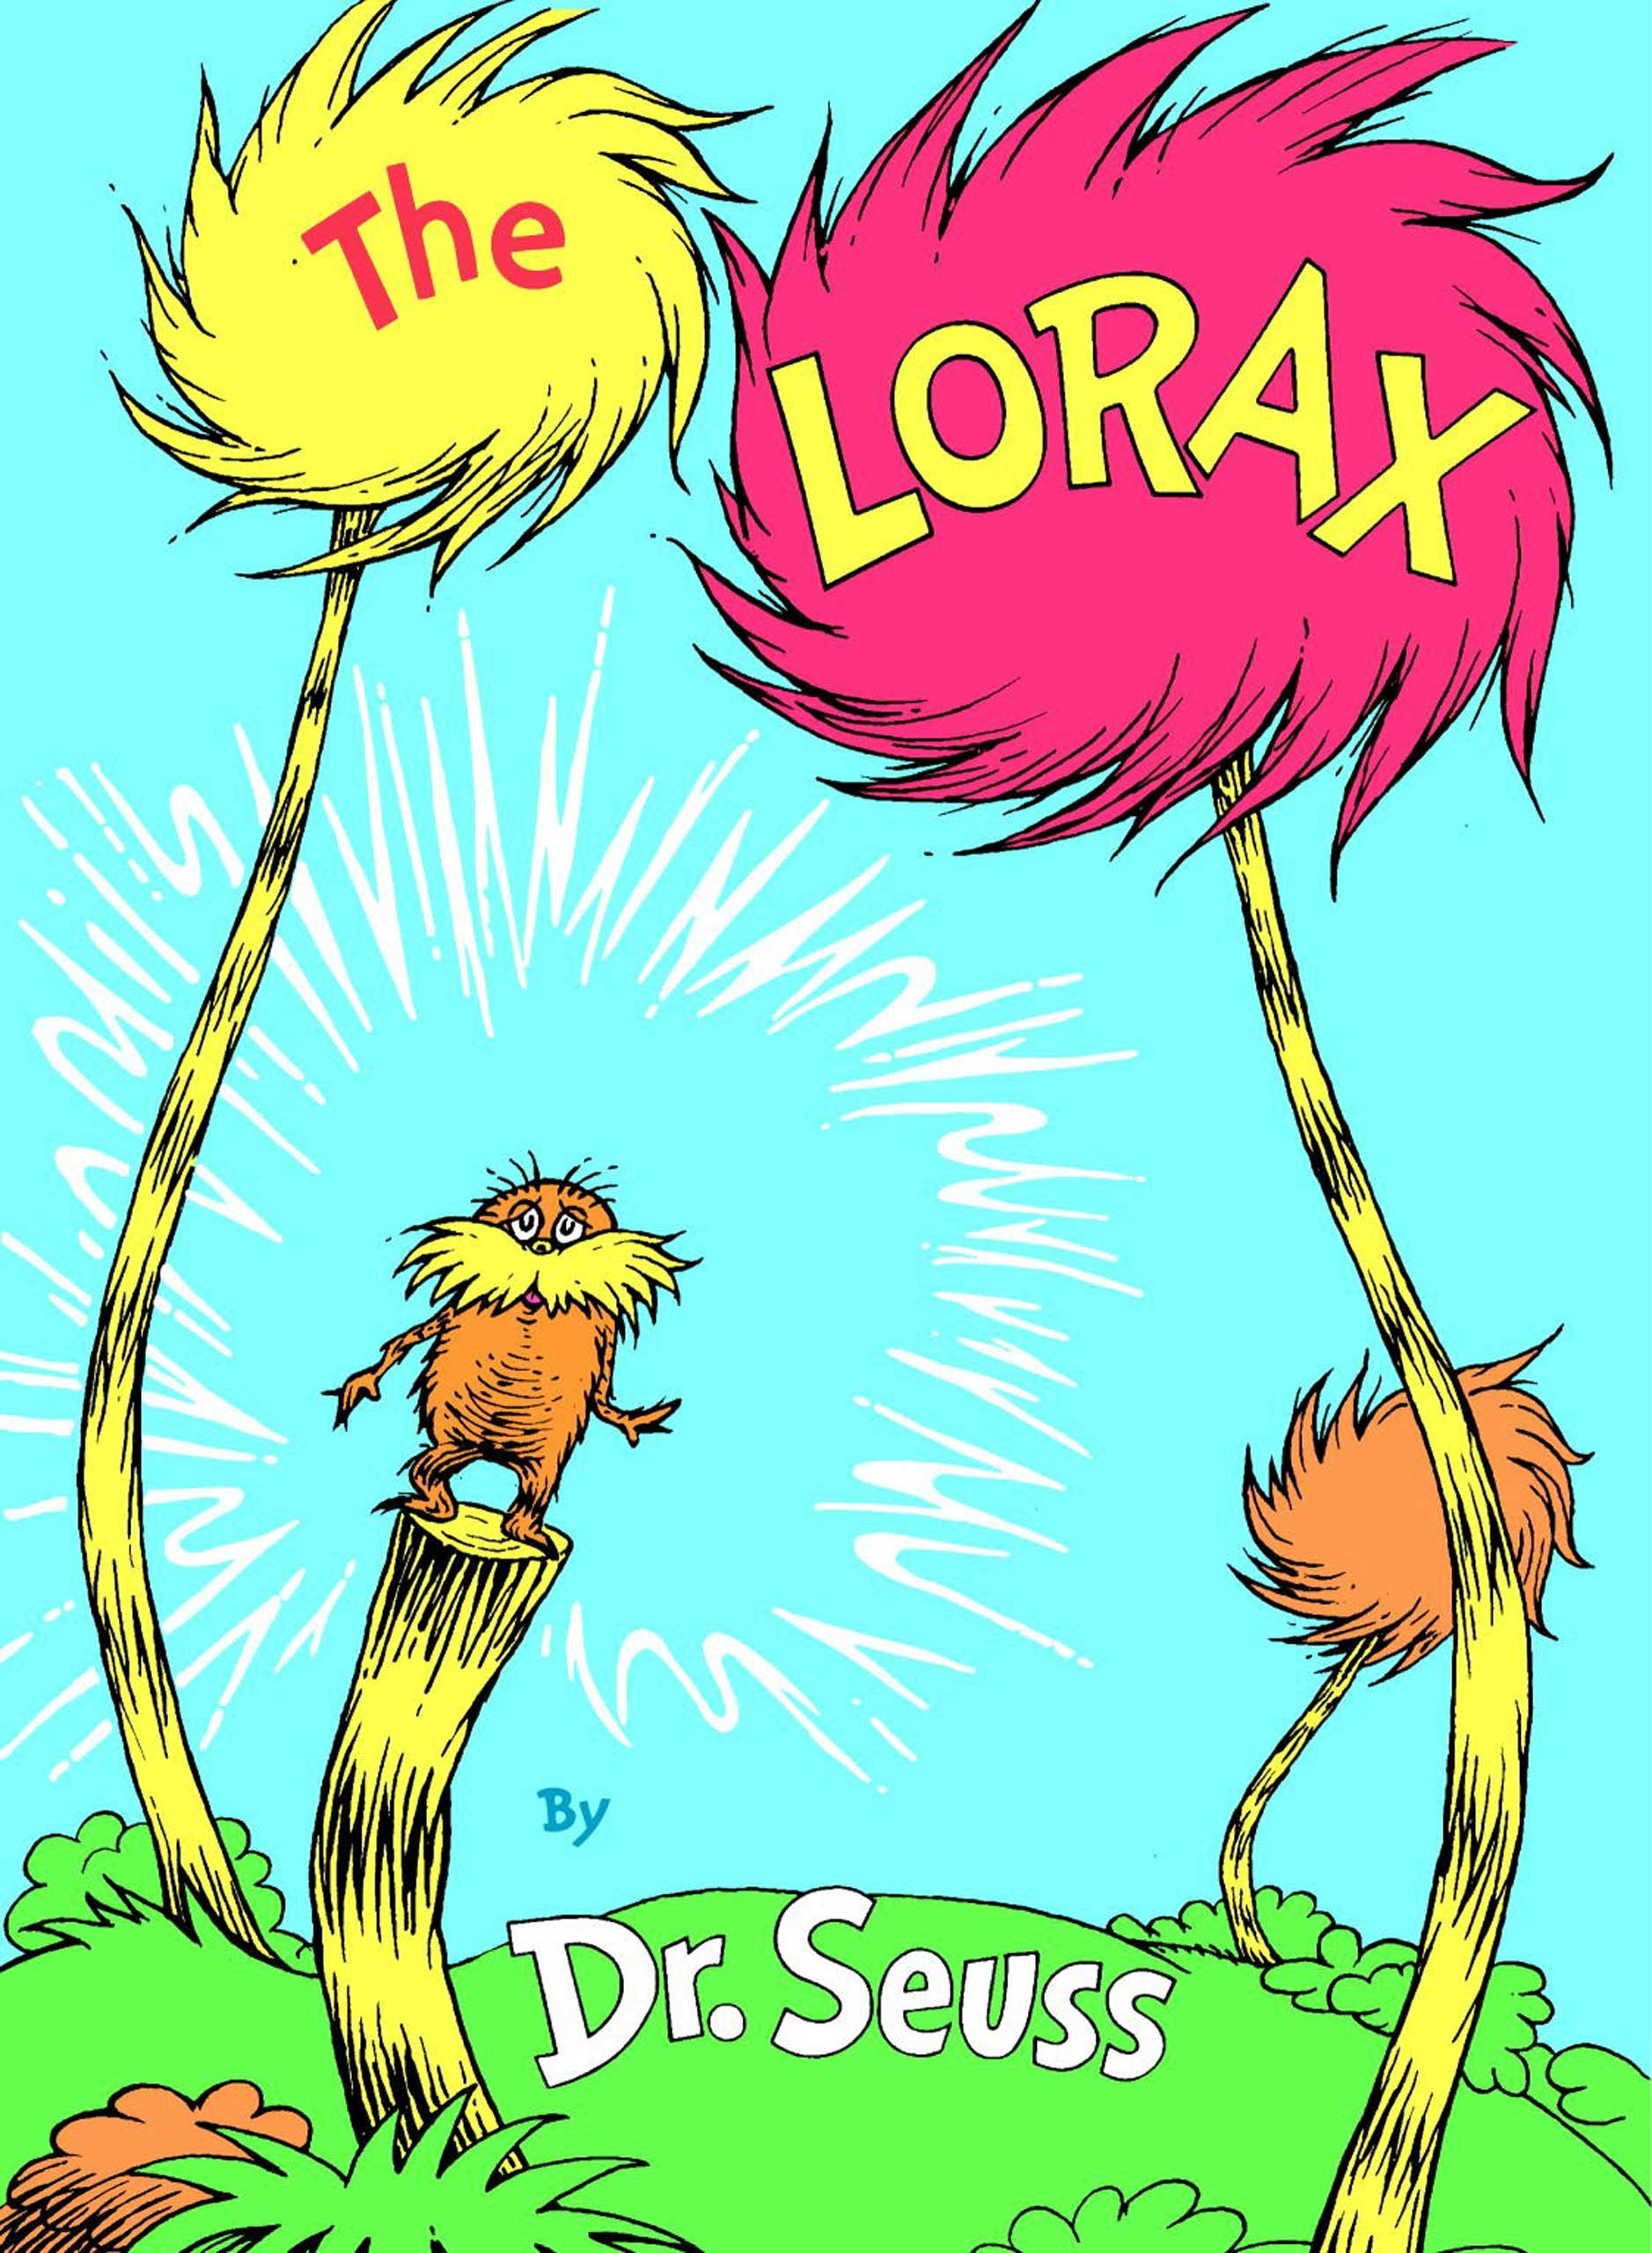 The Lorax, by Dr. Seuss.                                                                                                                            Seuss takes on serious subject matter without compromising his playful style in this environmentalist fable.                                                                                                                            Buy now: The Lorax